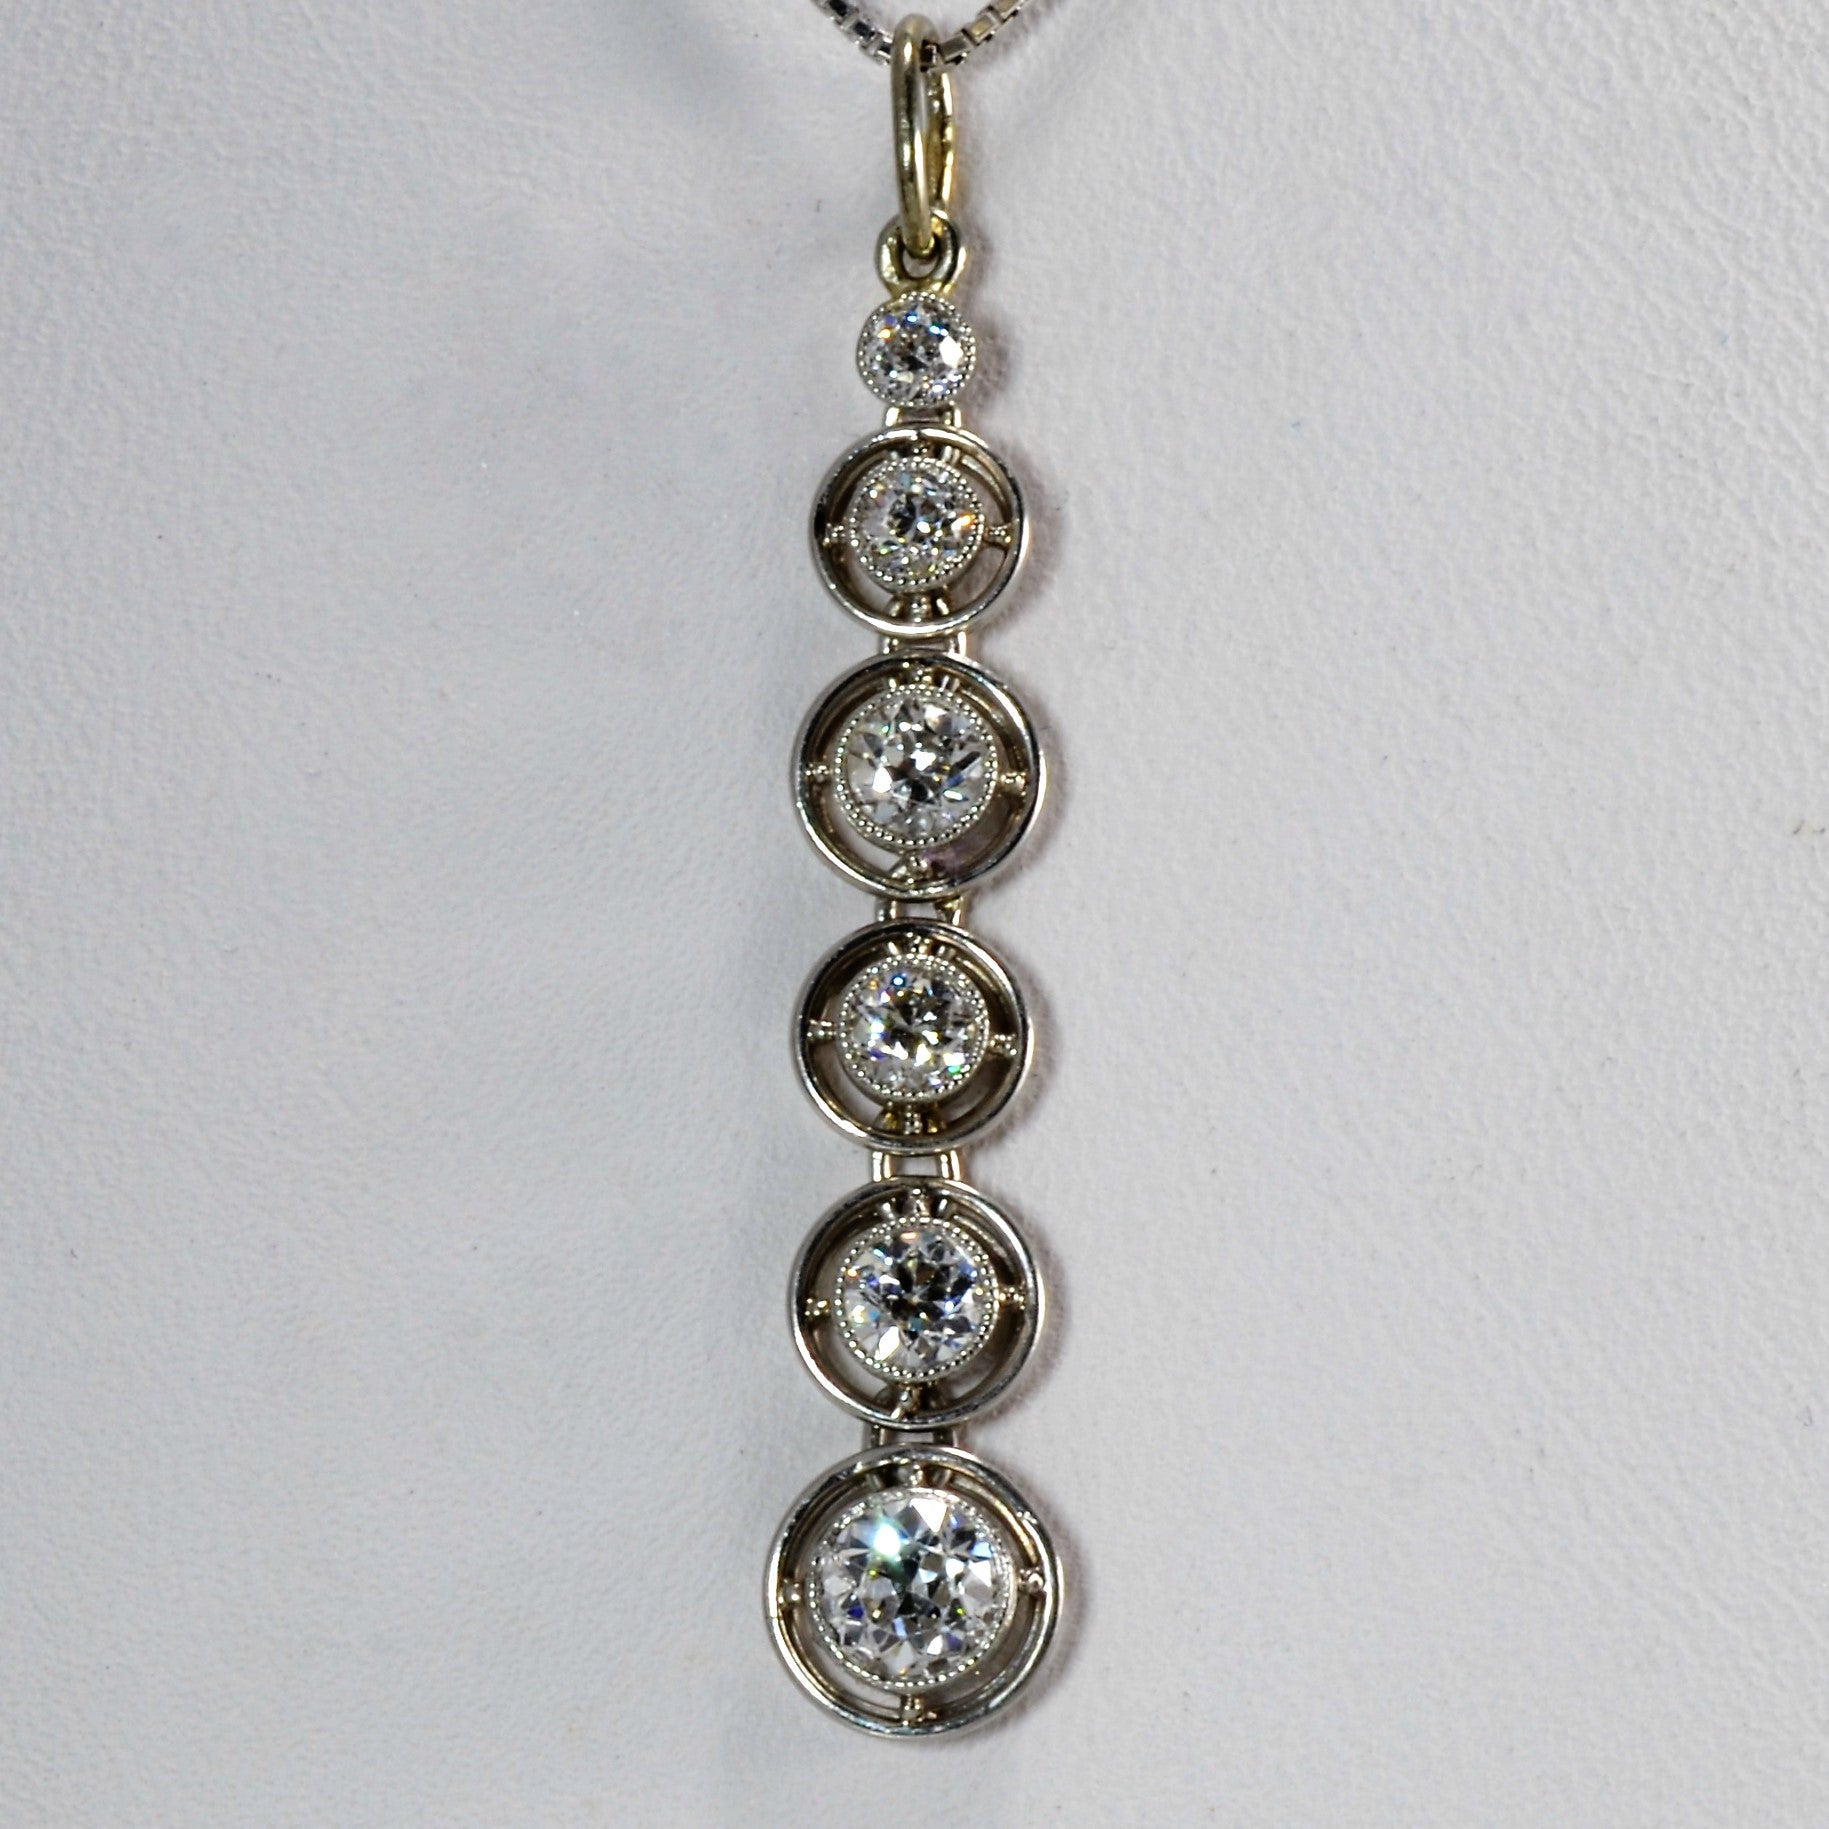 Vintage Bezel Set Diamond Drop Necklace | 0.65 ctw, 16"